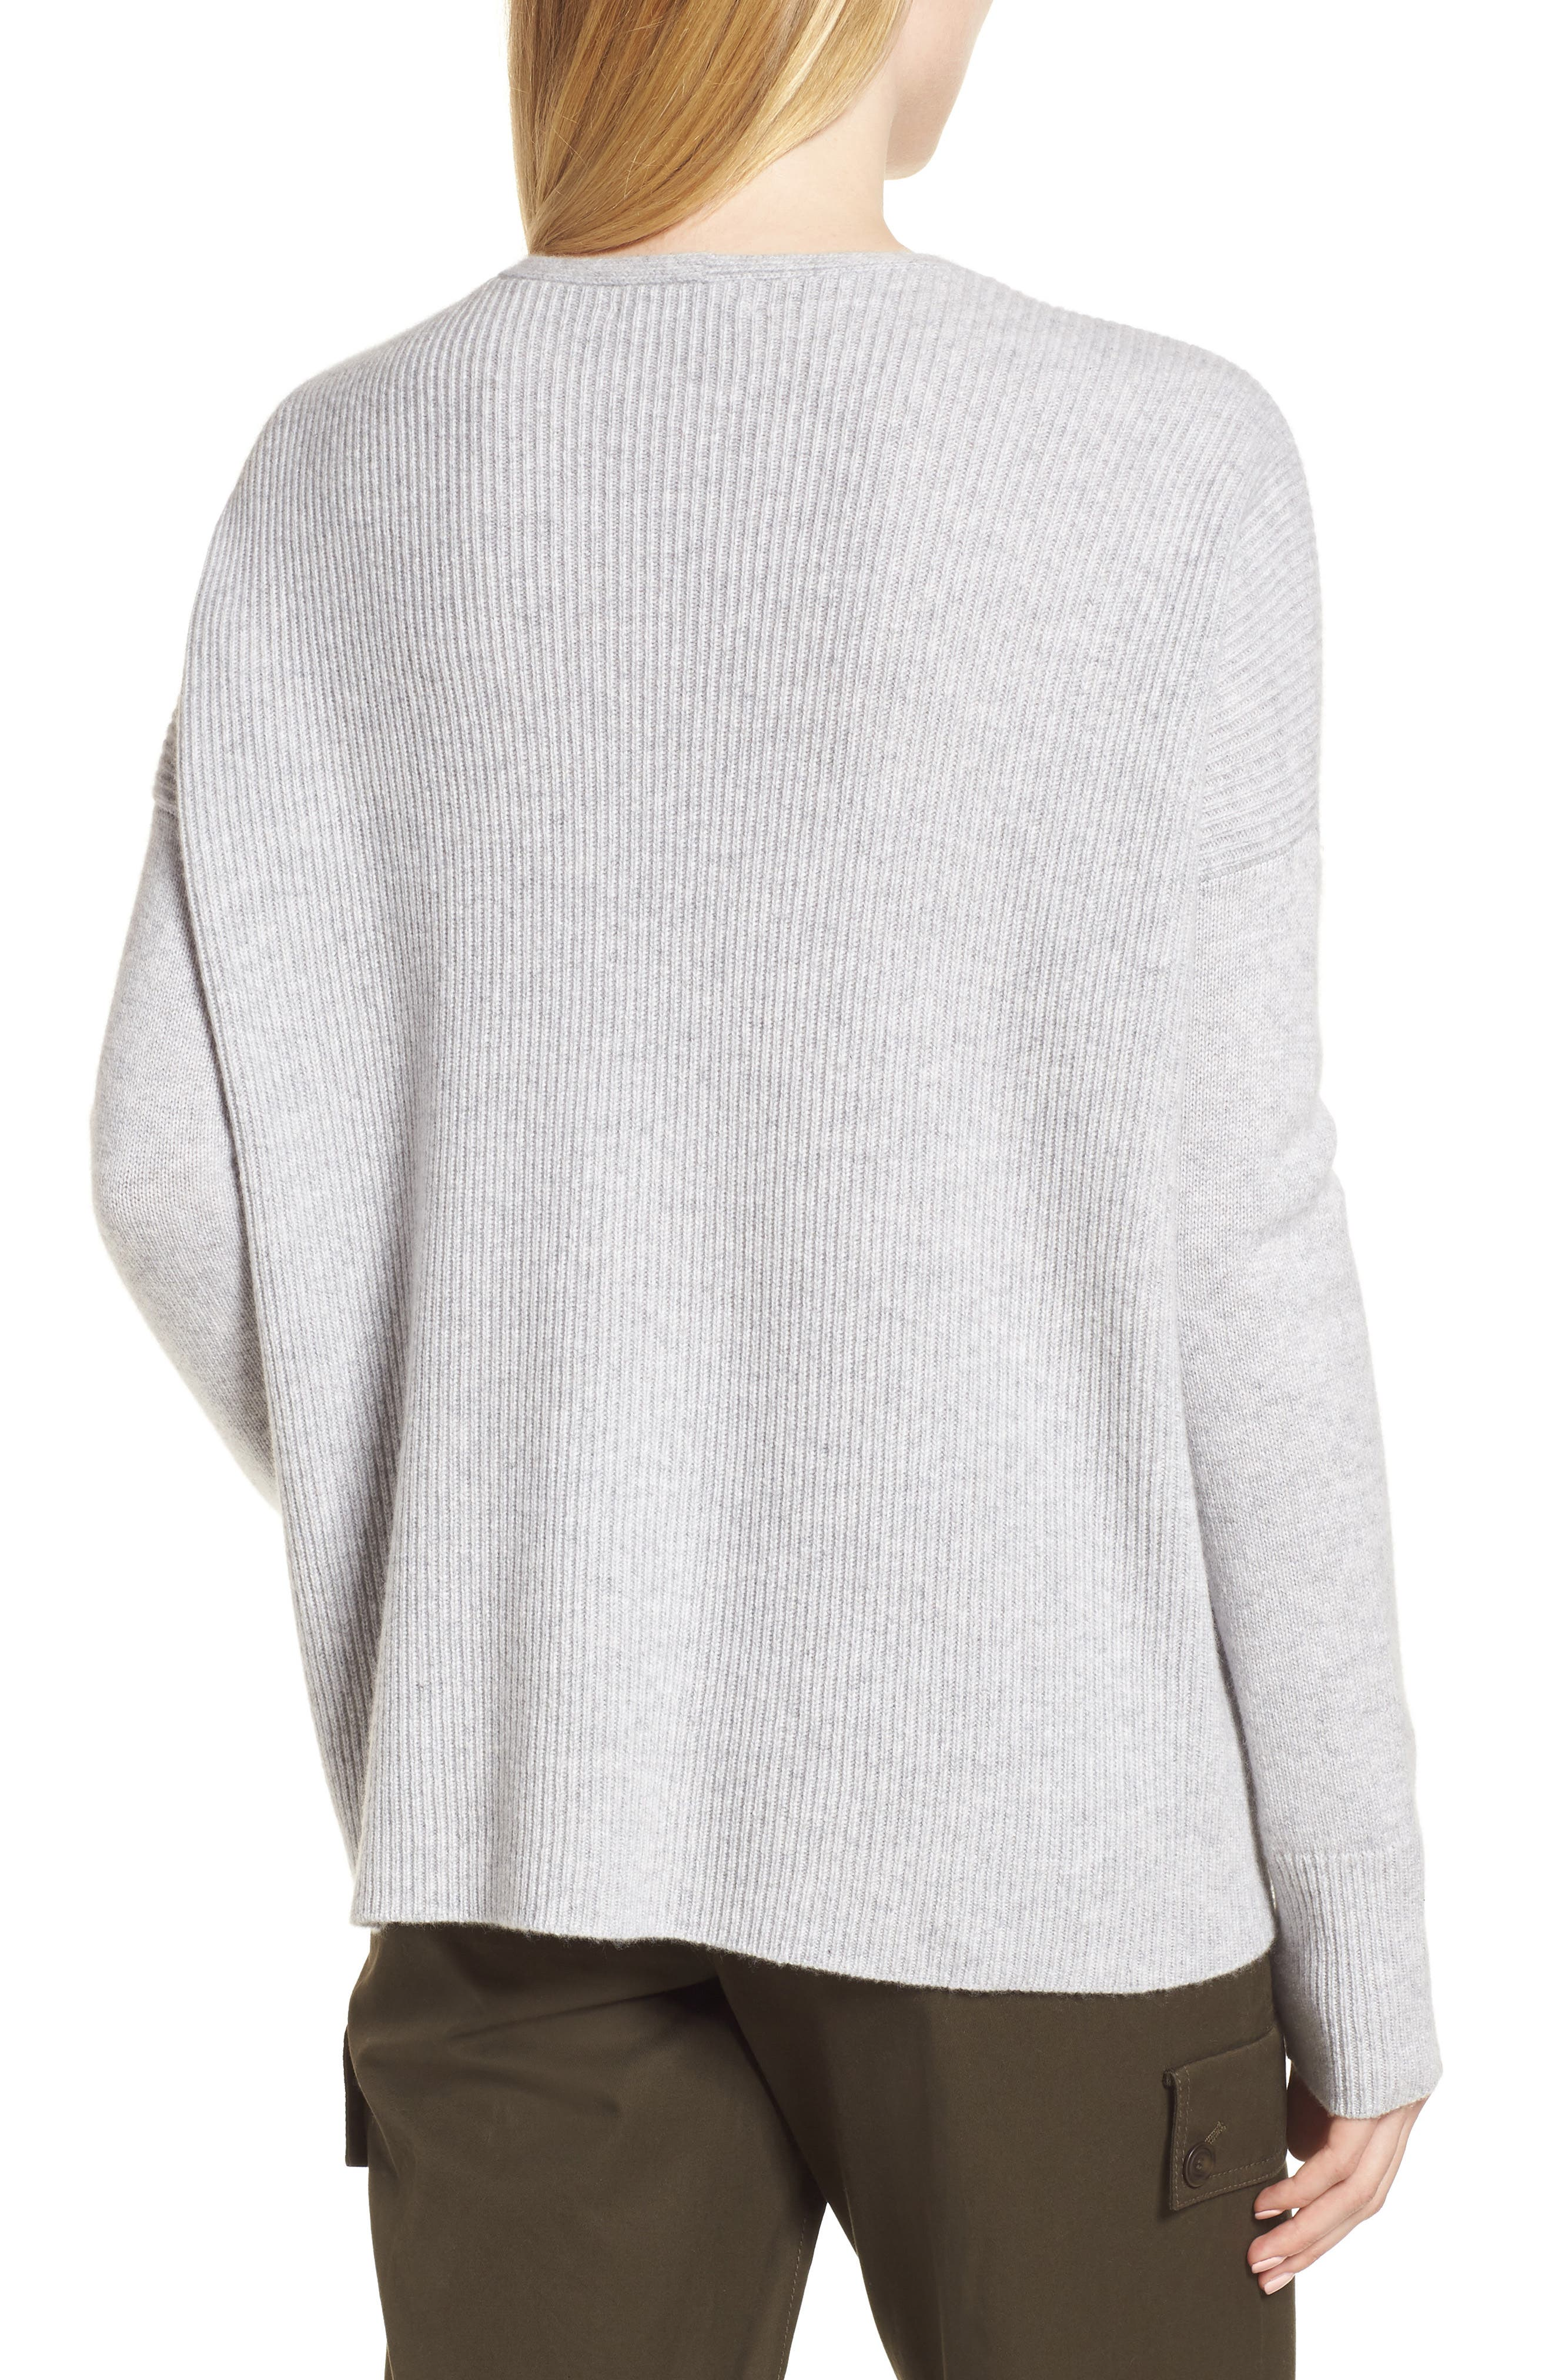 Cashmere Soft Ribbed Pullover Sweater,                             Alternate thumbnail 2, color,                             Grey Clay Heather